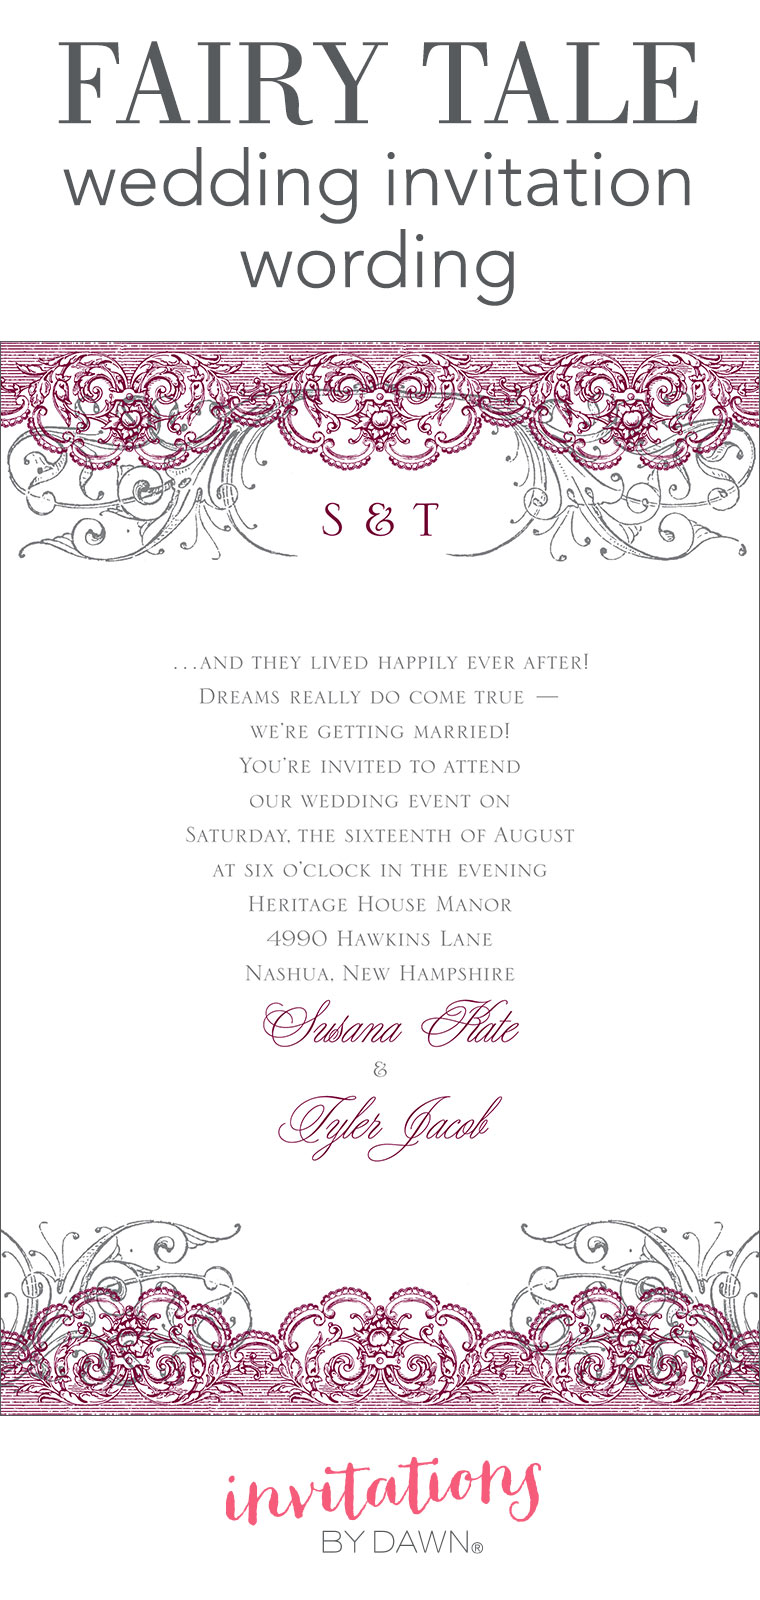 Fairy tale wedding invitation wording invitations by dawn fairy tale wedding invitation wording stopboris Choice Image